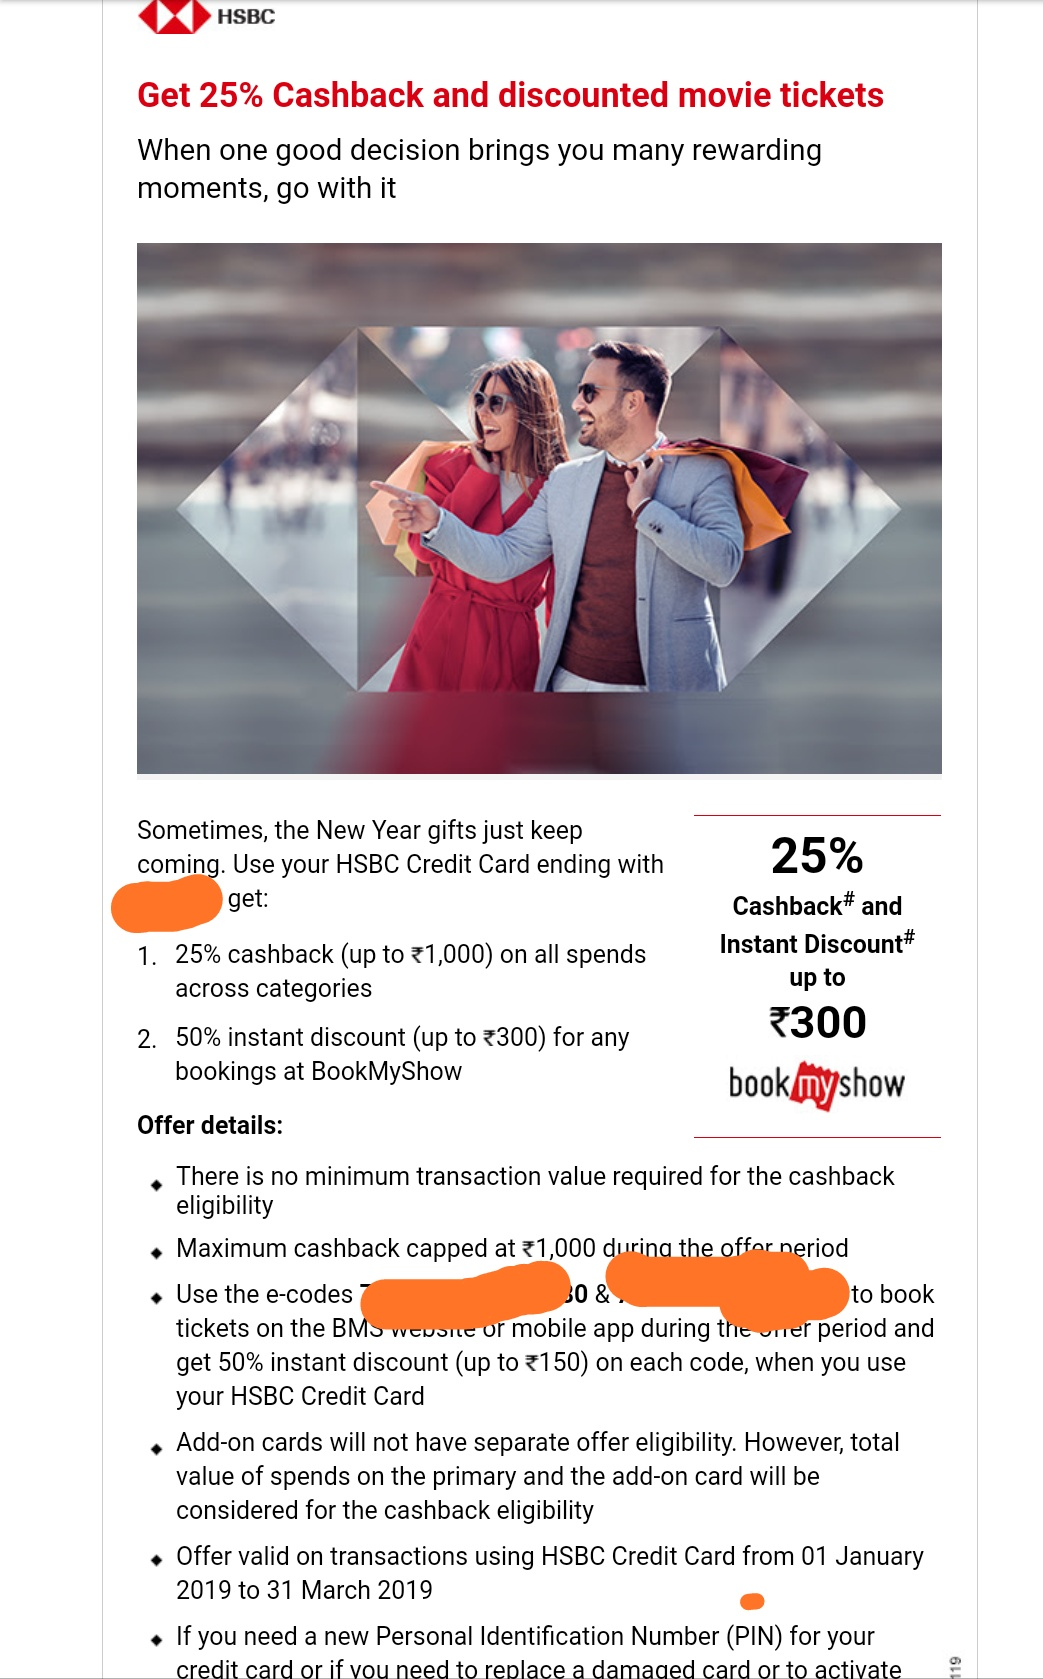 HSBC CC: 25% cashback (up to 1,000) on all spends across categories